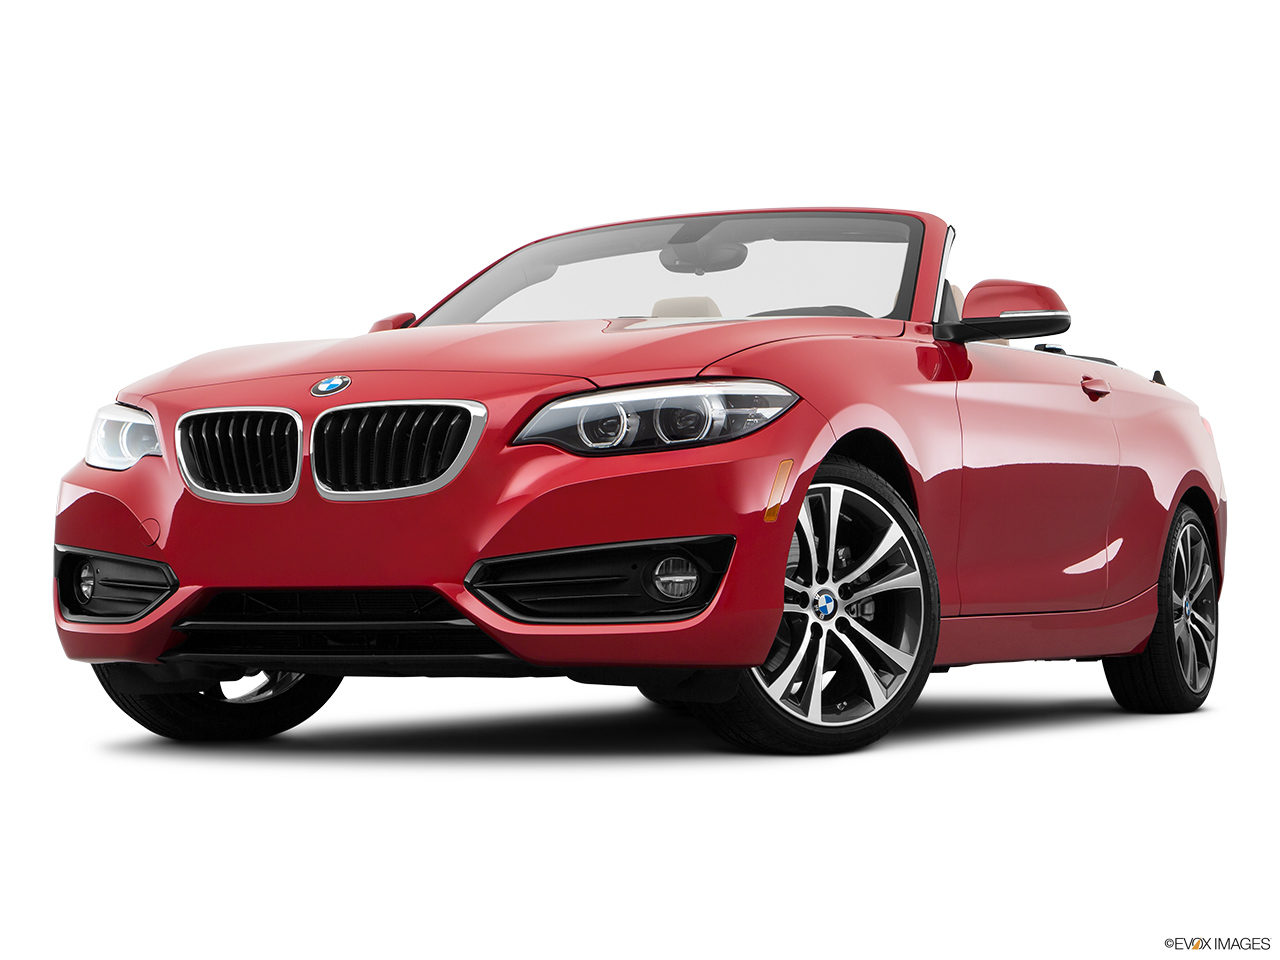 BMW 2 Series Convertible 2018, Saudi Arabia, Front angle view, low wide perspective.